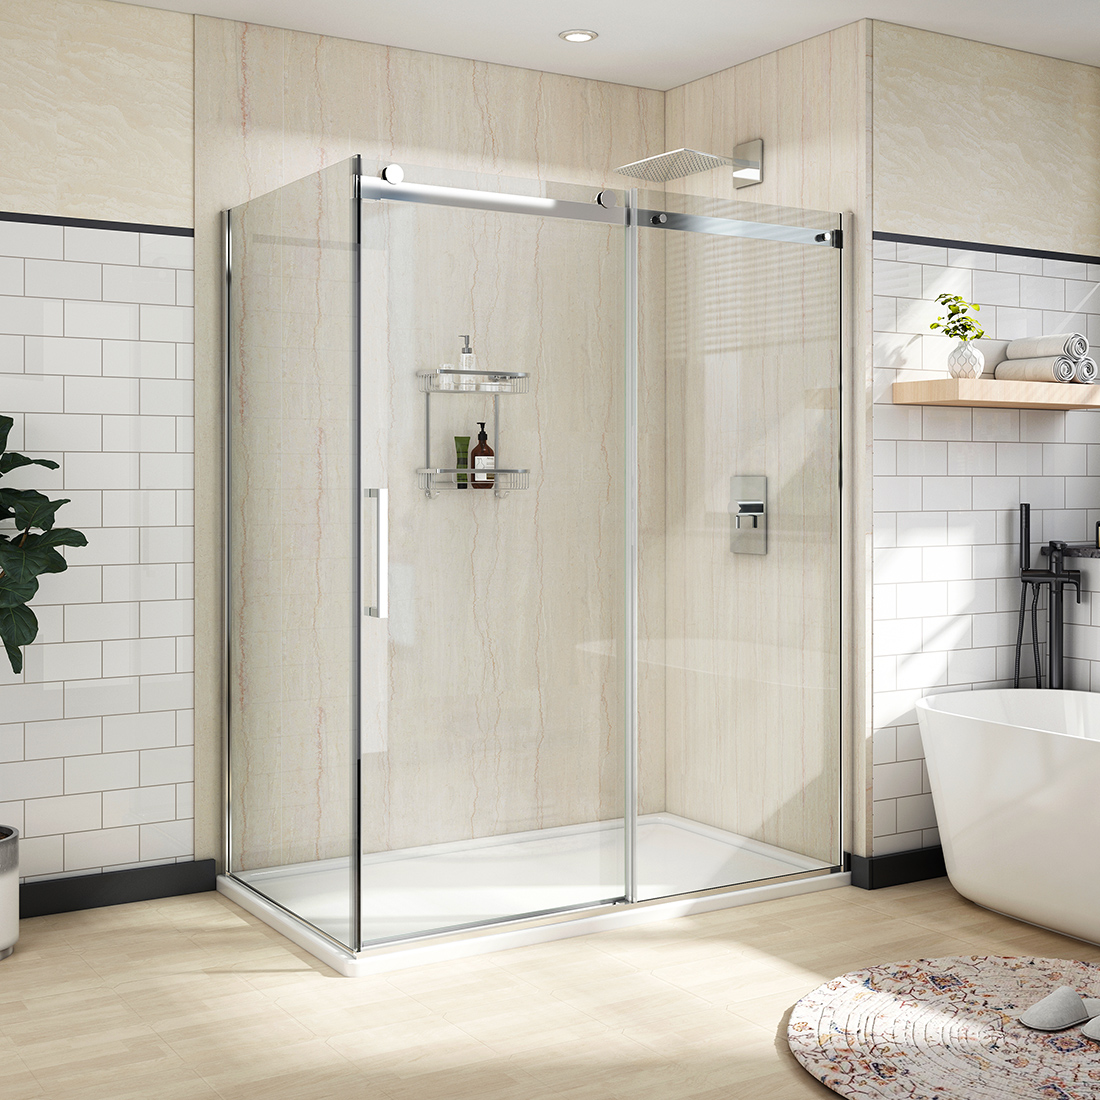 Details About 60 X36 X72 Bath Frameless Sliding Shower Door Enclosure 5 16 Glass Chrome